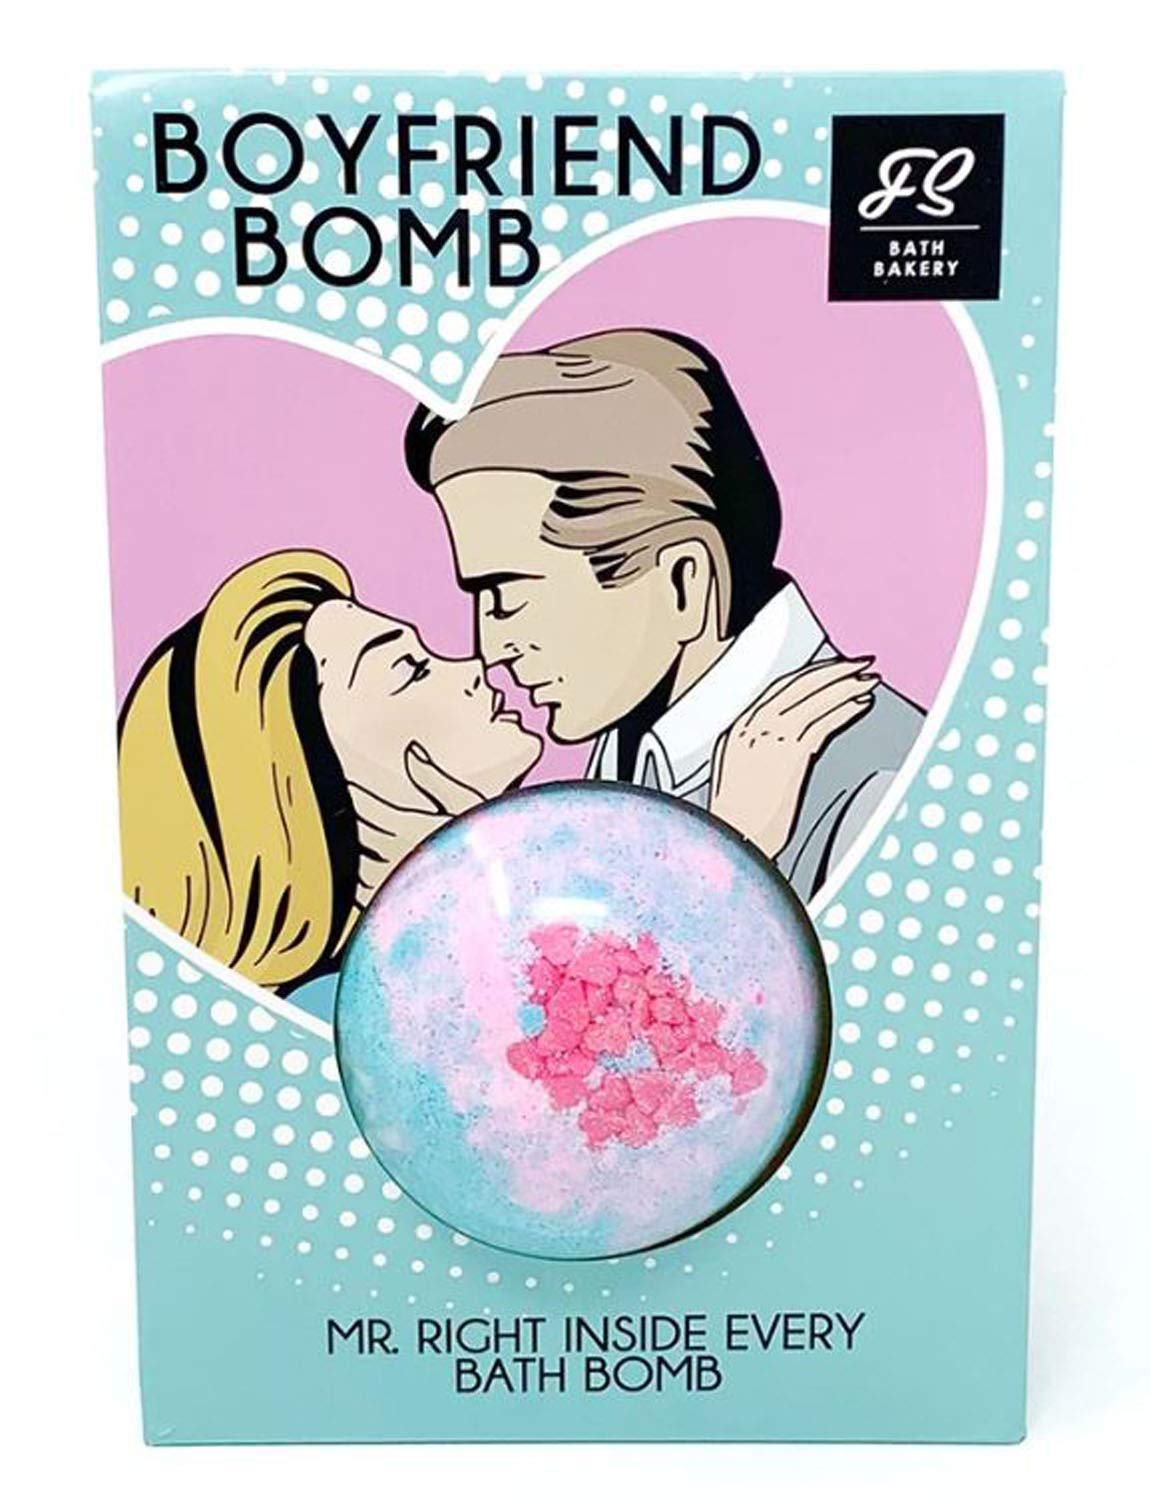 Feeling Smitten Boyfriend Bath Bombs 6 Oz! Sweet Scented Bath Bombs! Natural & Sulfate Free! Surprise Bath Bombs With Mr. Right Inside! Help Fizz Your Cares Away! Choose Your Bath Bombs! (Boyfriend)